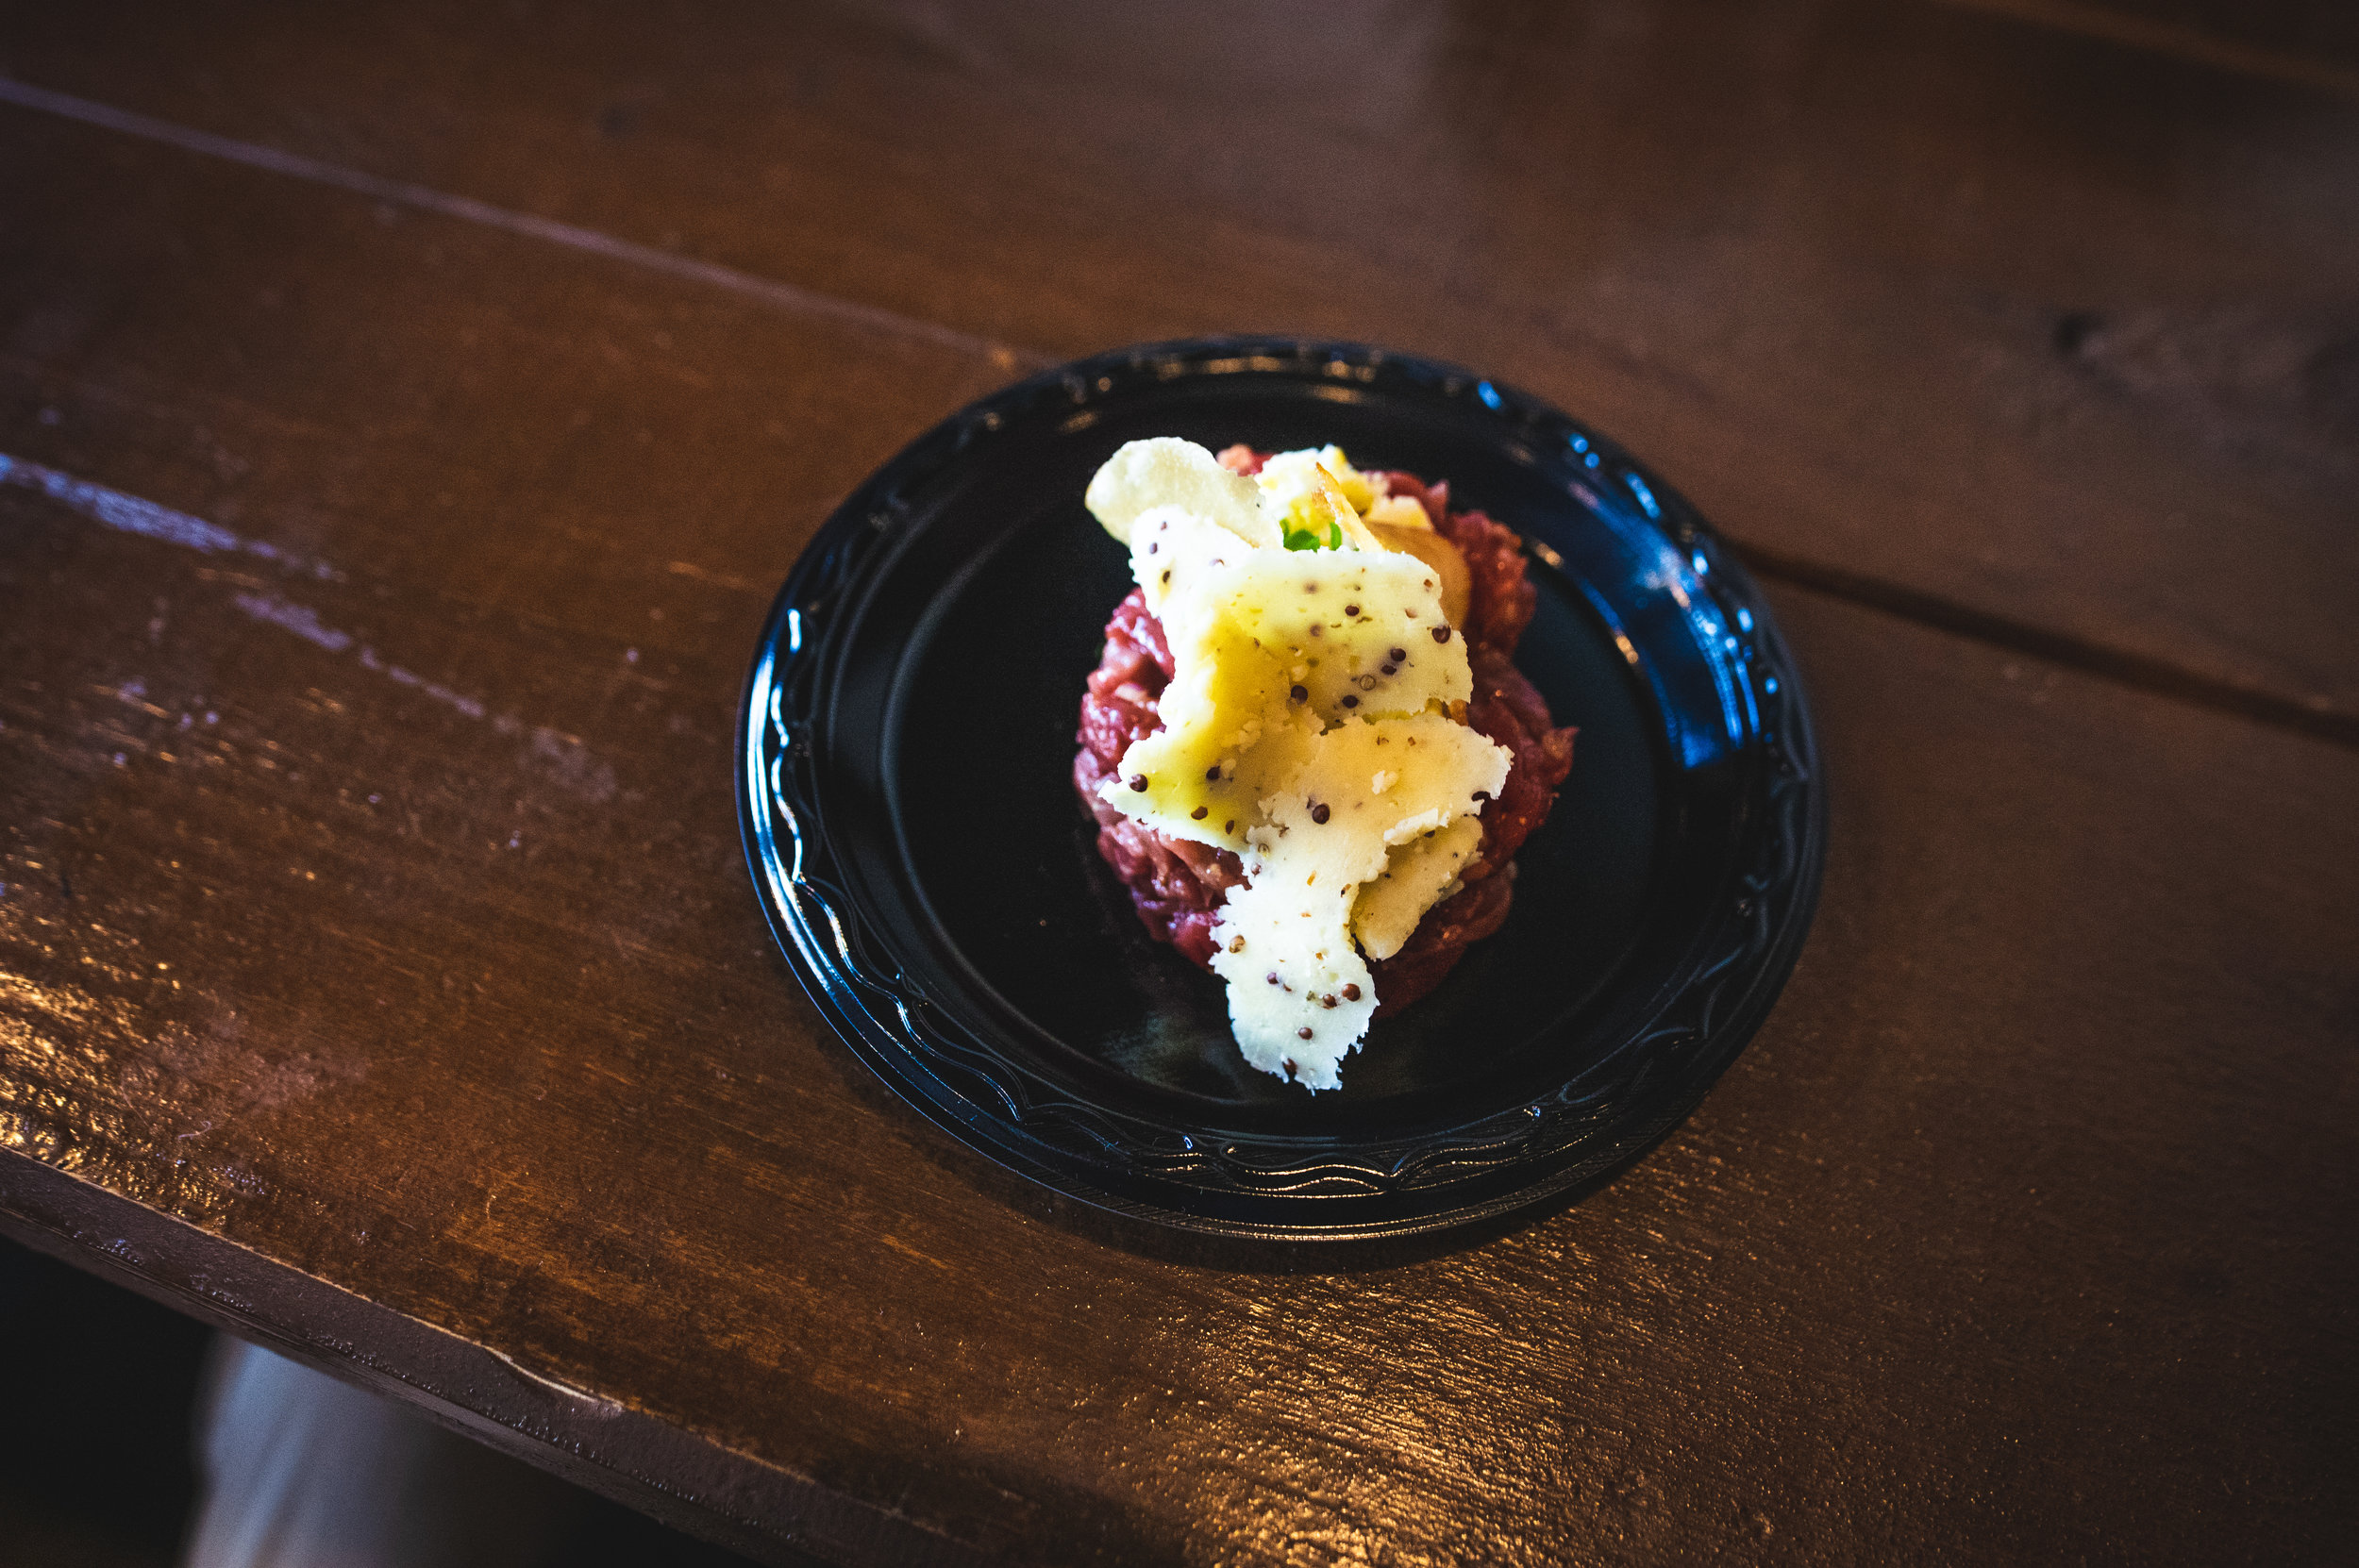 The first course - Beef Tartar with Herbs and Boiled Egg paired with Red Dragon Cheese. Photo by Garrett Smith.